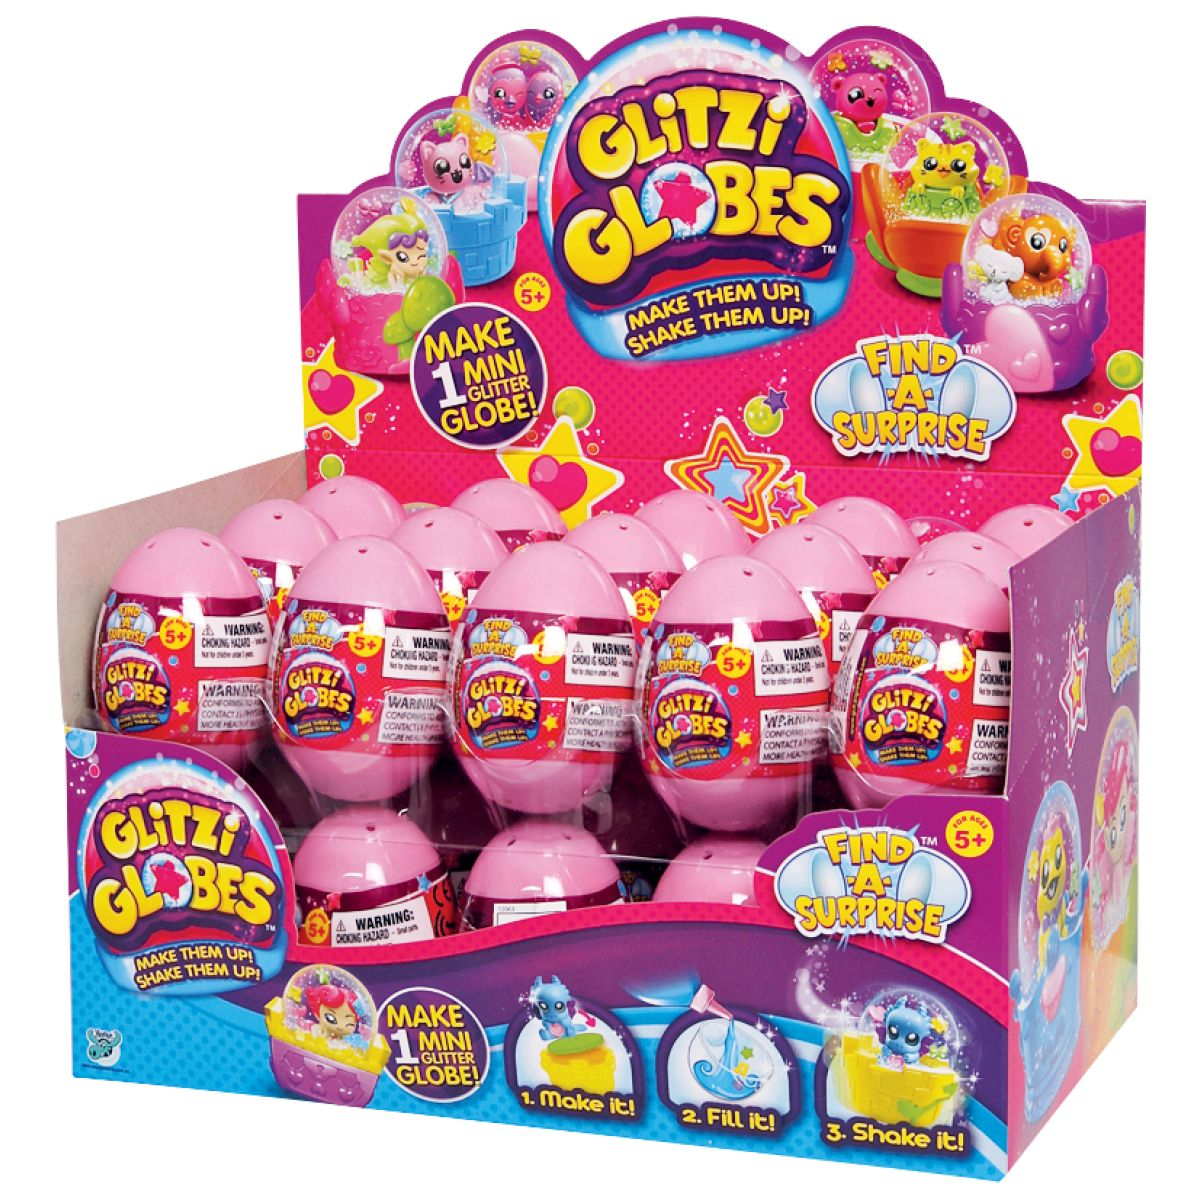 Toys At Toys R Us : Awesome glitzi globes that you can find at toys r us